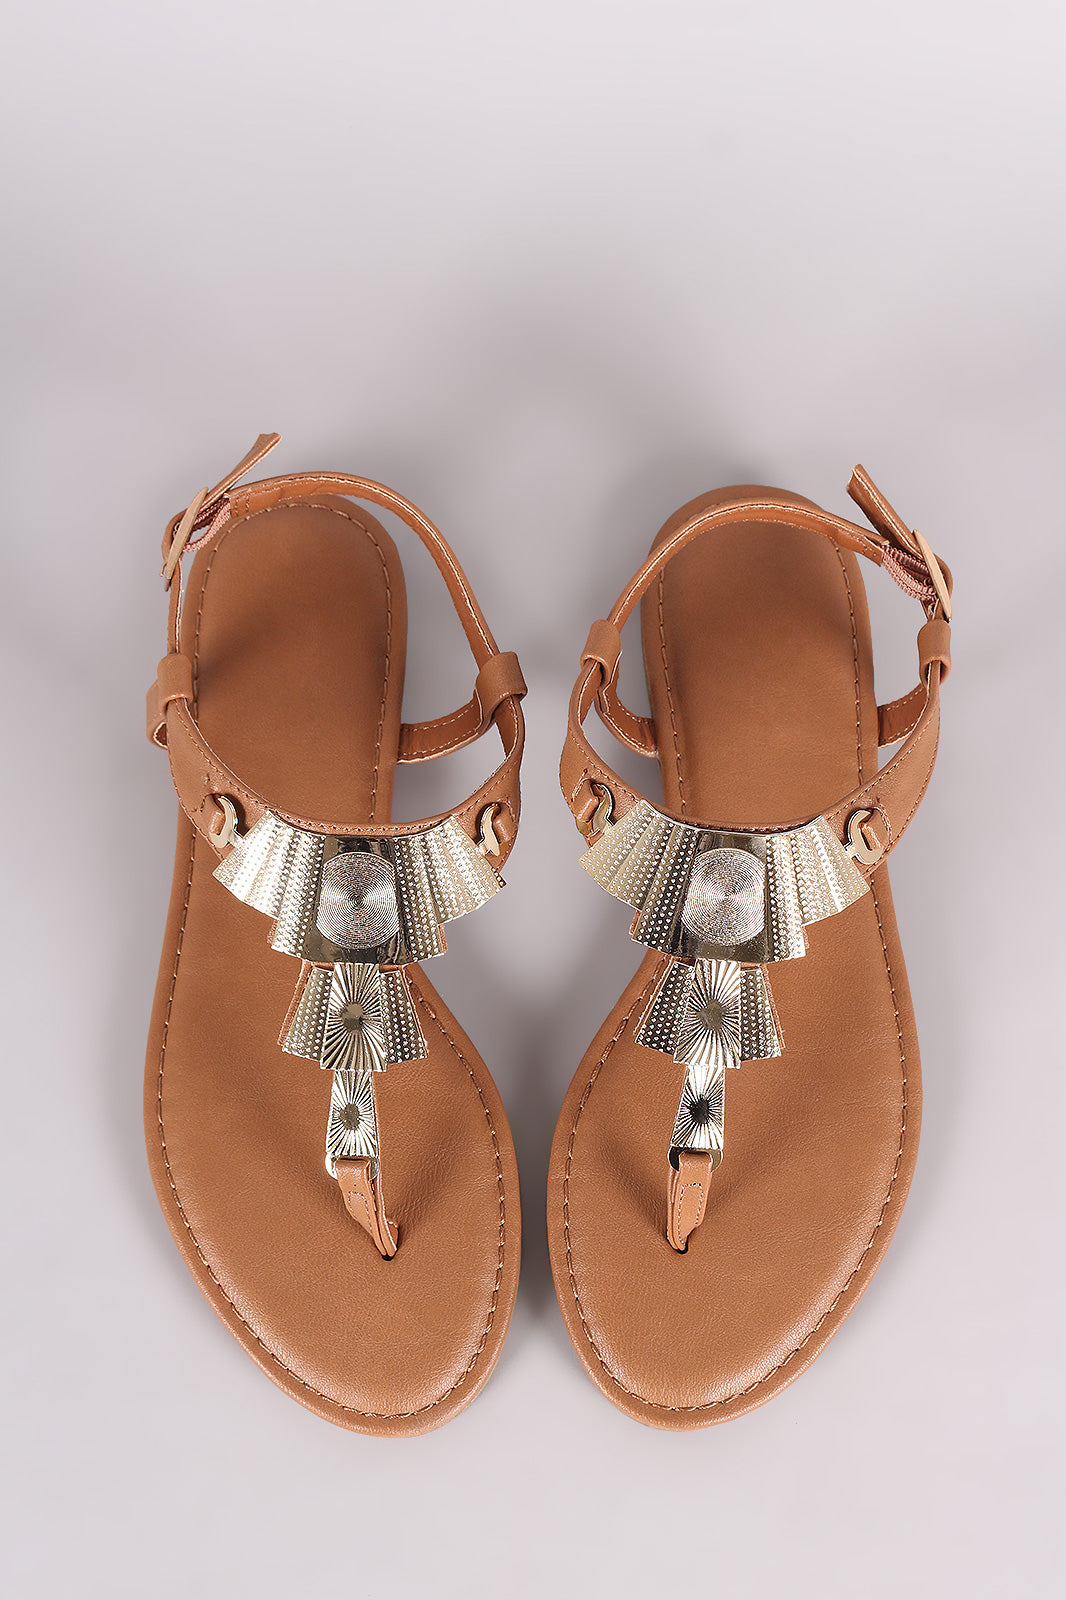 83a7c235d5a0f Bamboo Textured Hardware T-Strap Thong Flat Sandal Shoes Sandals ...